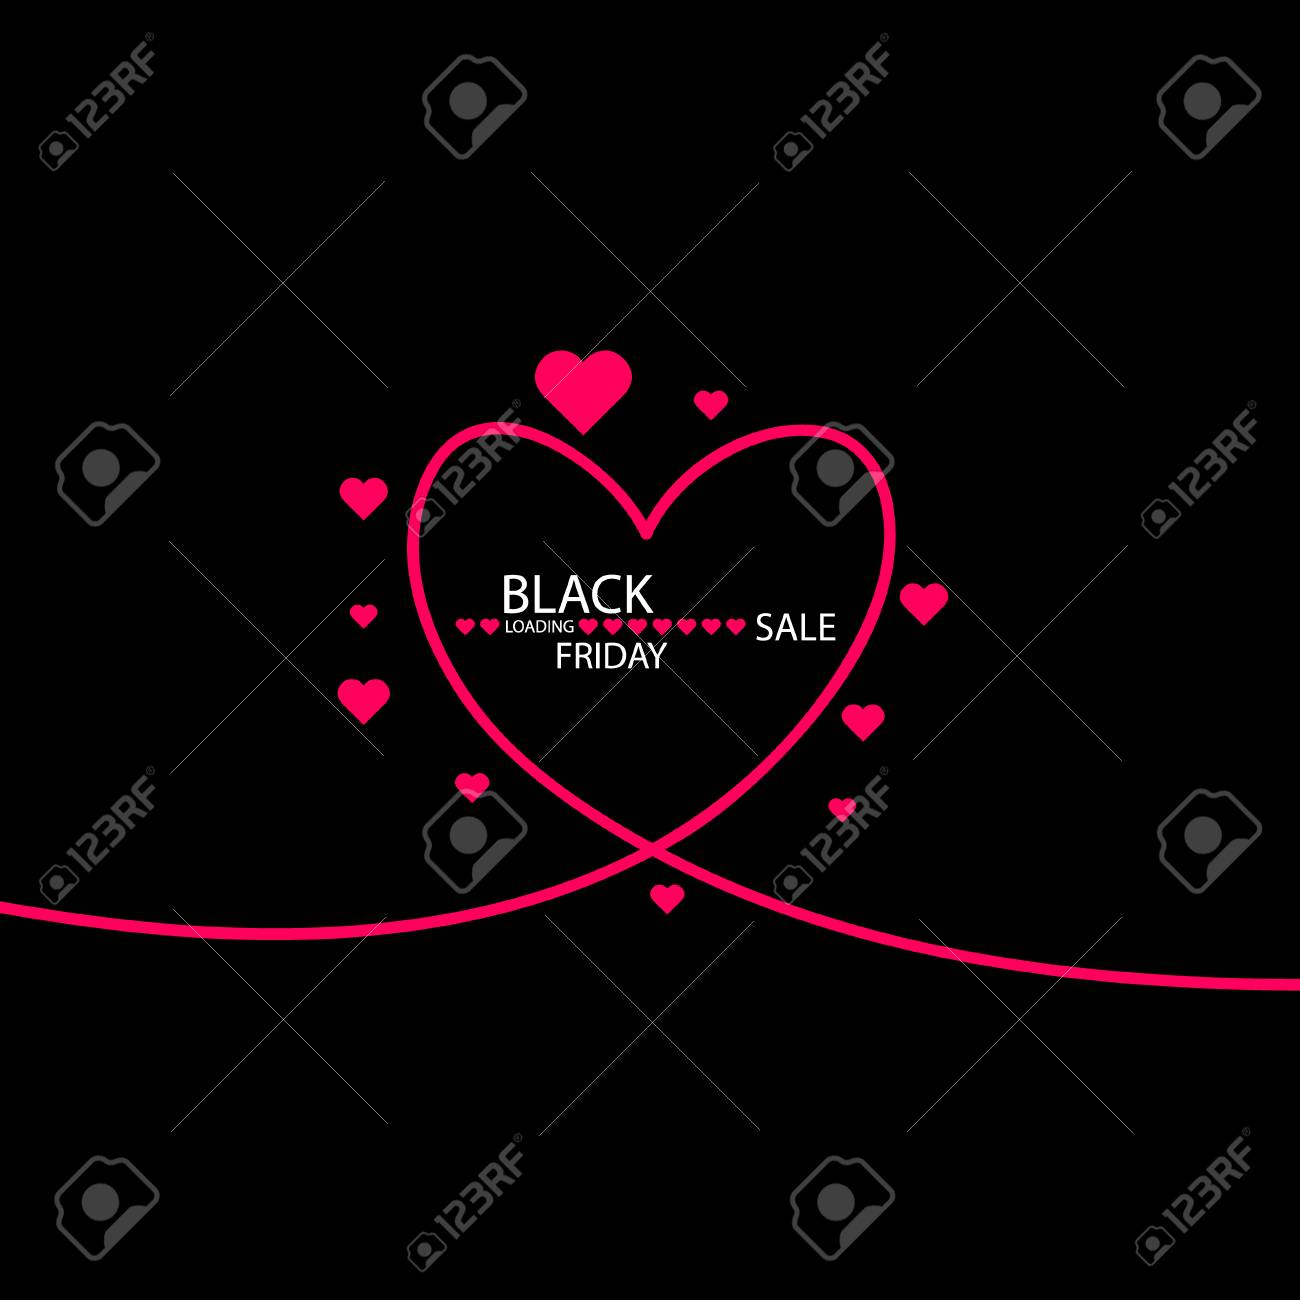 Illustration Of An Isolated Line Art Heart Icon With The Text BLACK FRIDAY Standard Bild